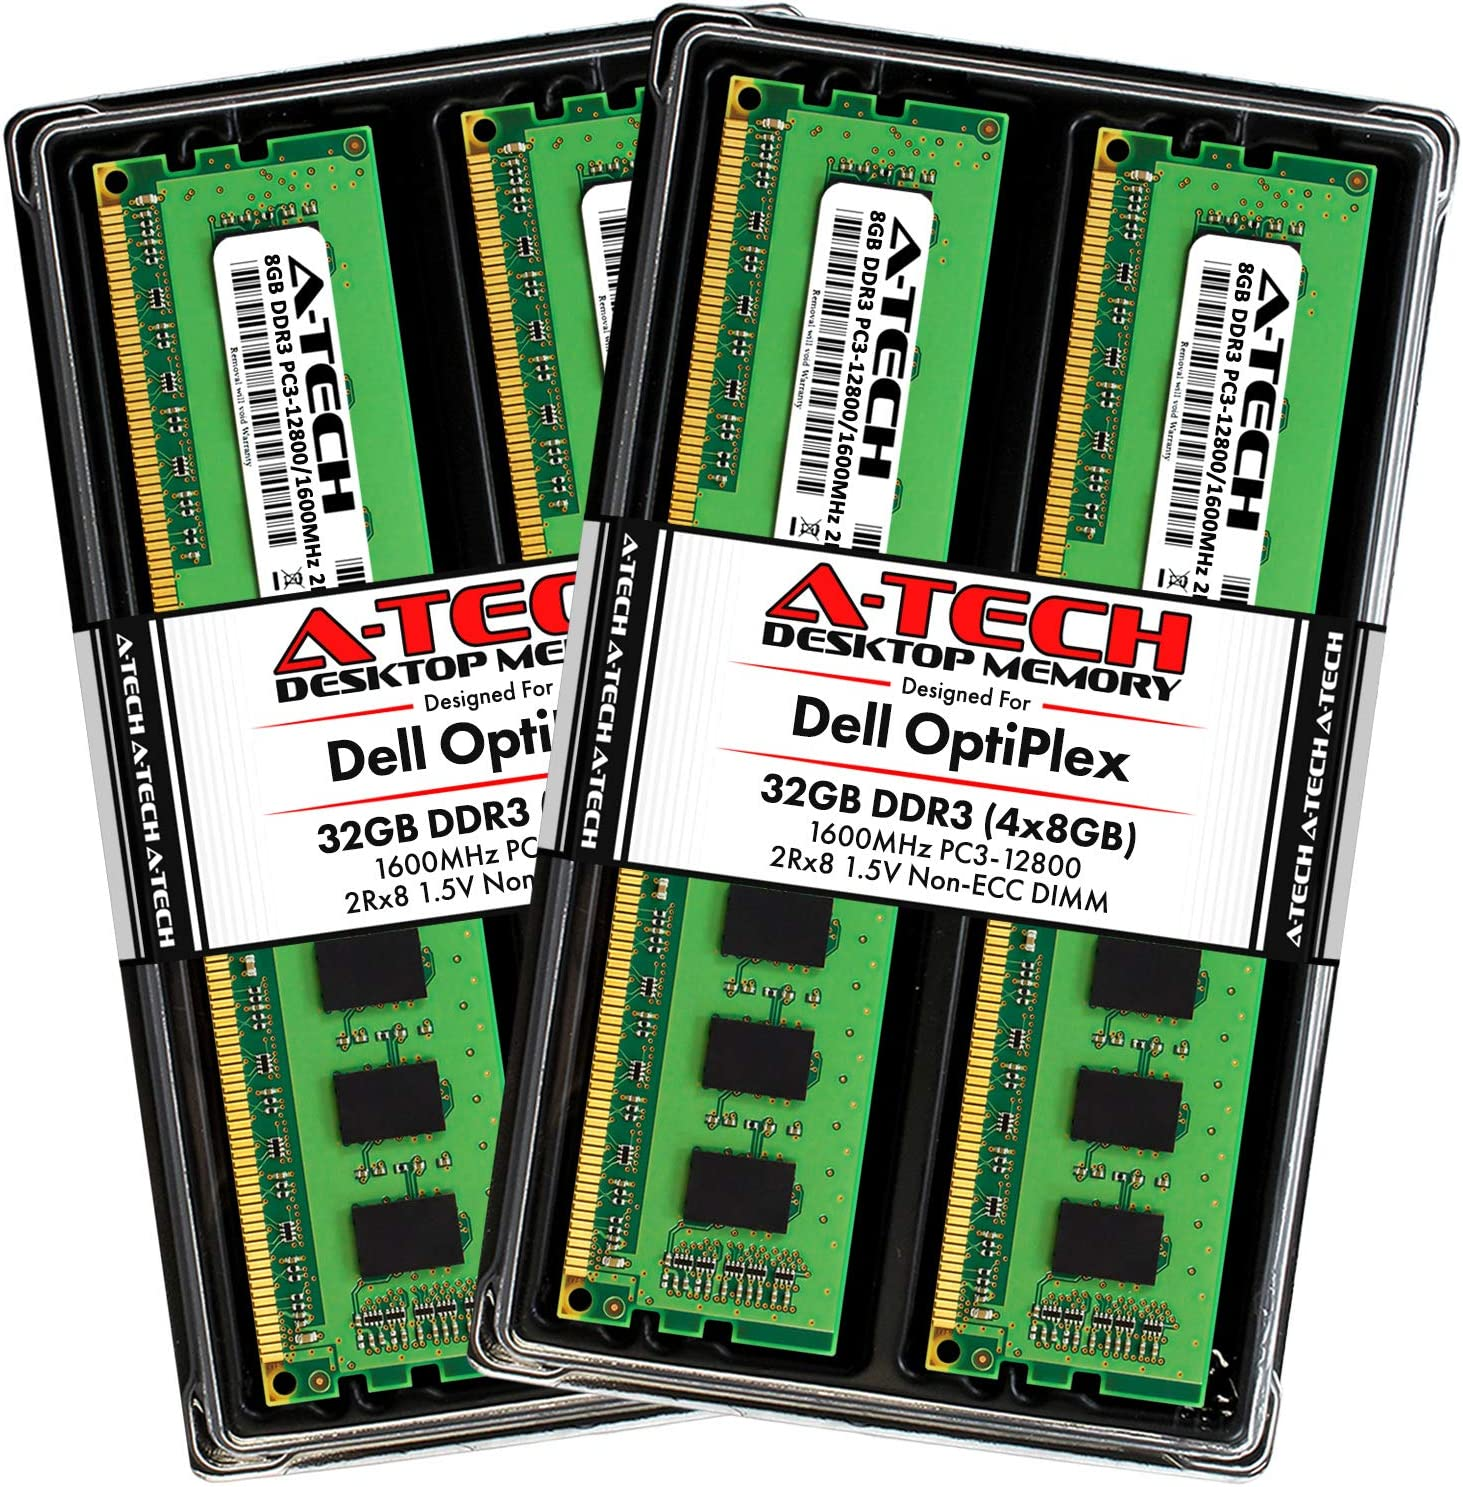 A-Tech 32GB Max RAM Kit for Dell OptiPlex 9020, 9010, 7020, 7010, MT/DT/SFF - (4 x 8GB) DDR3 1600MHz PC3-12800 Non-ECC DIMM Memory Upgrade